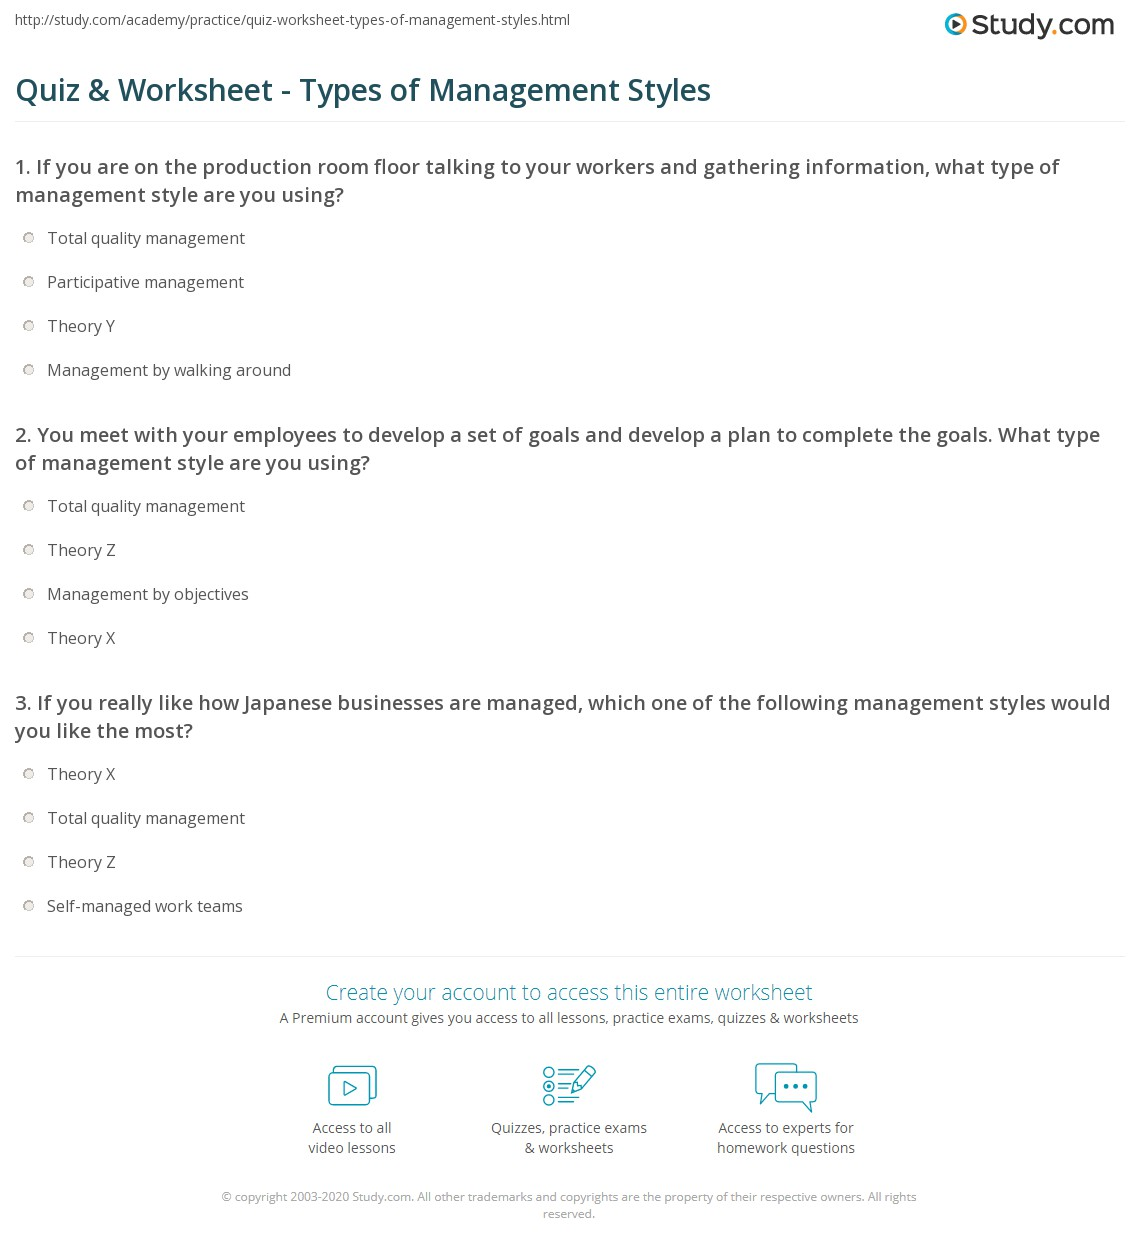 quiz worksheet types of management styles com you meet your employees to develop a set of goals and develop a plan to complete the goals what type of management style are you using